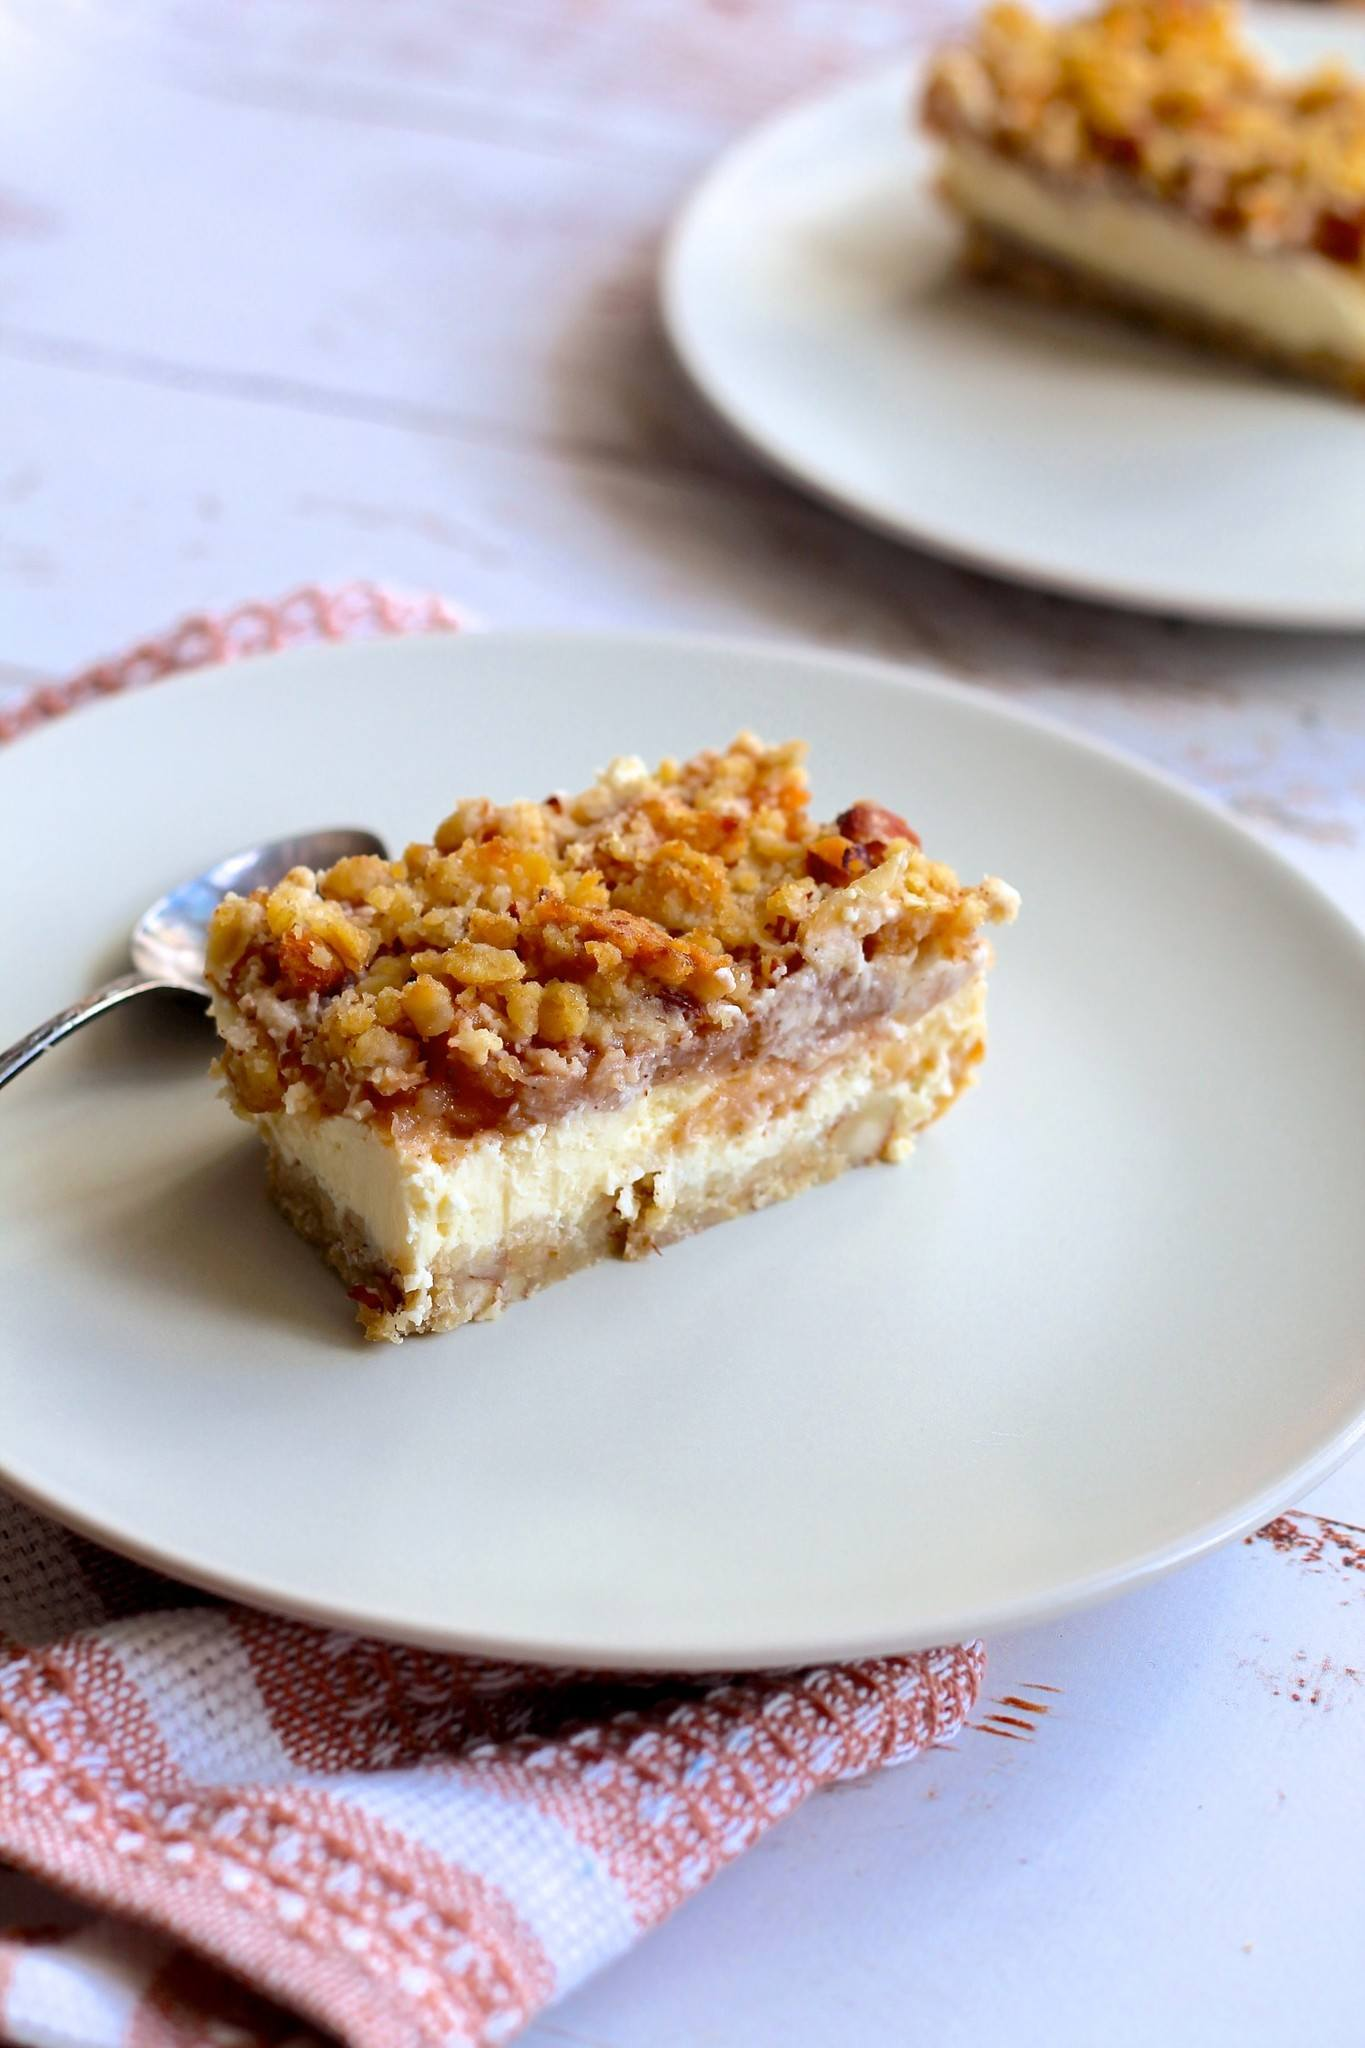 Æble cheesecake med crumble